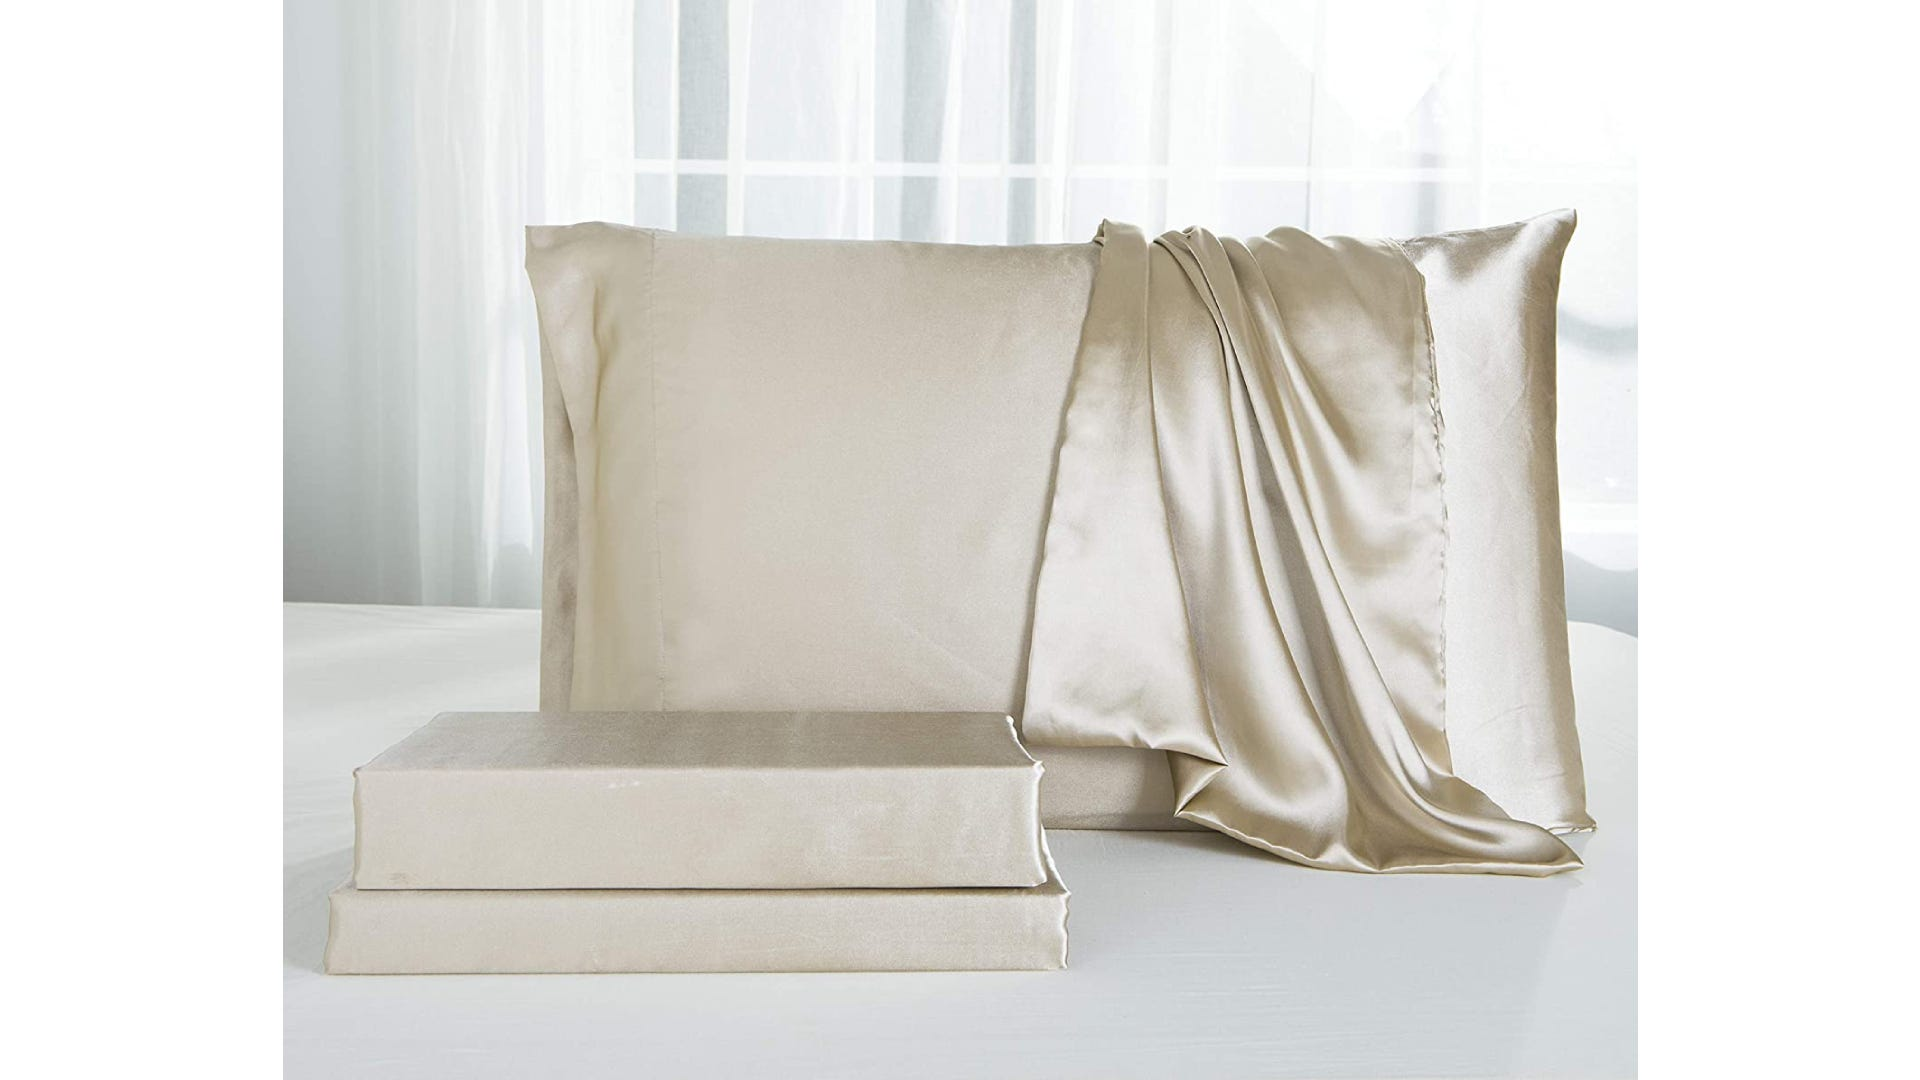 taupe colored sheet set with pillow and brand box on bed